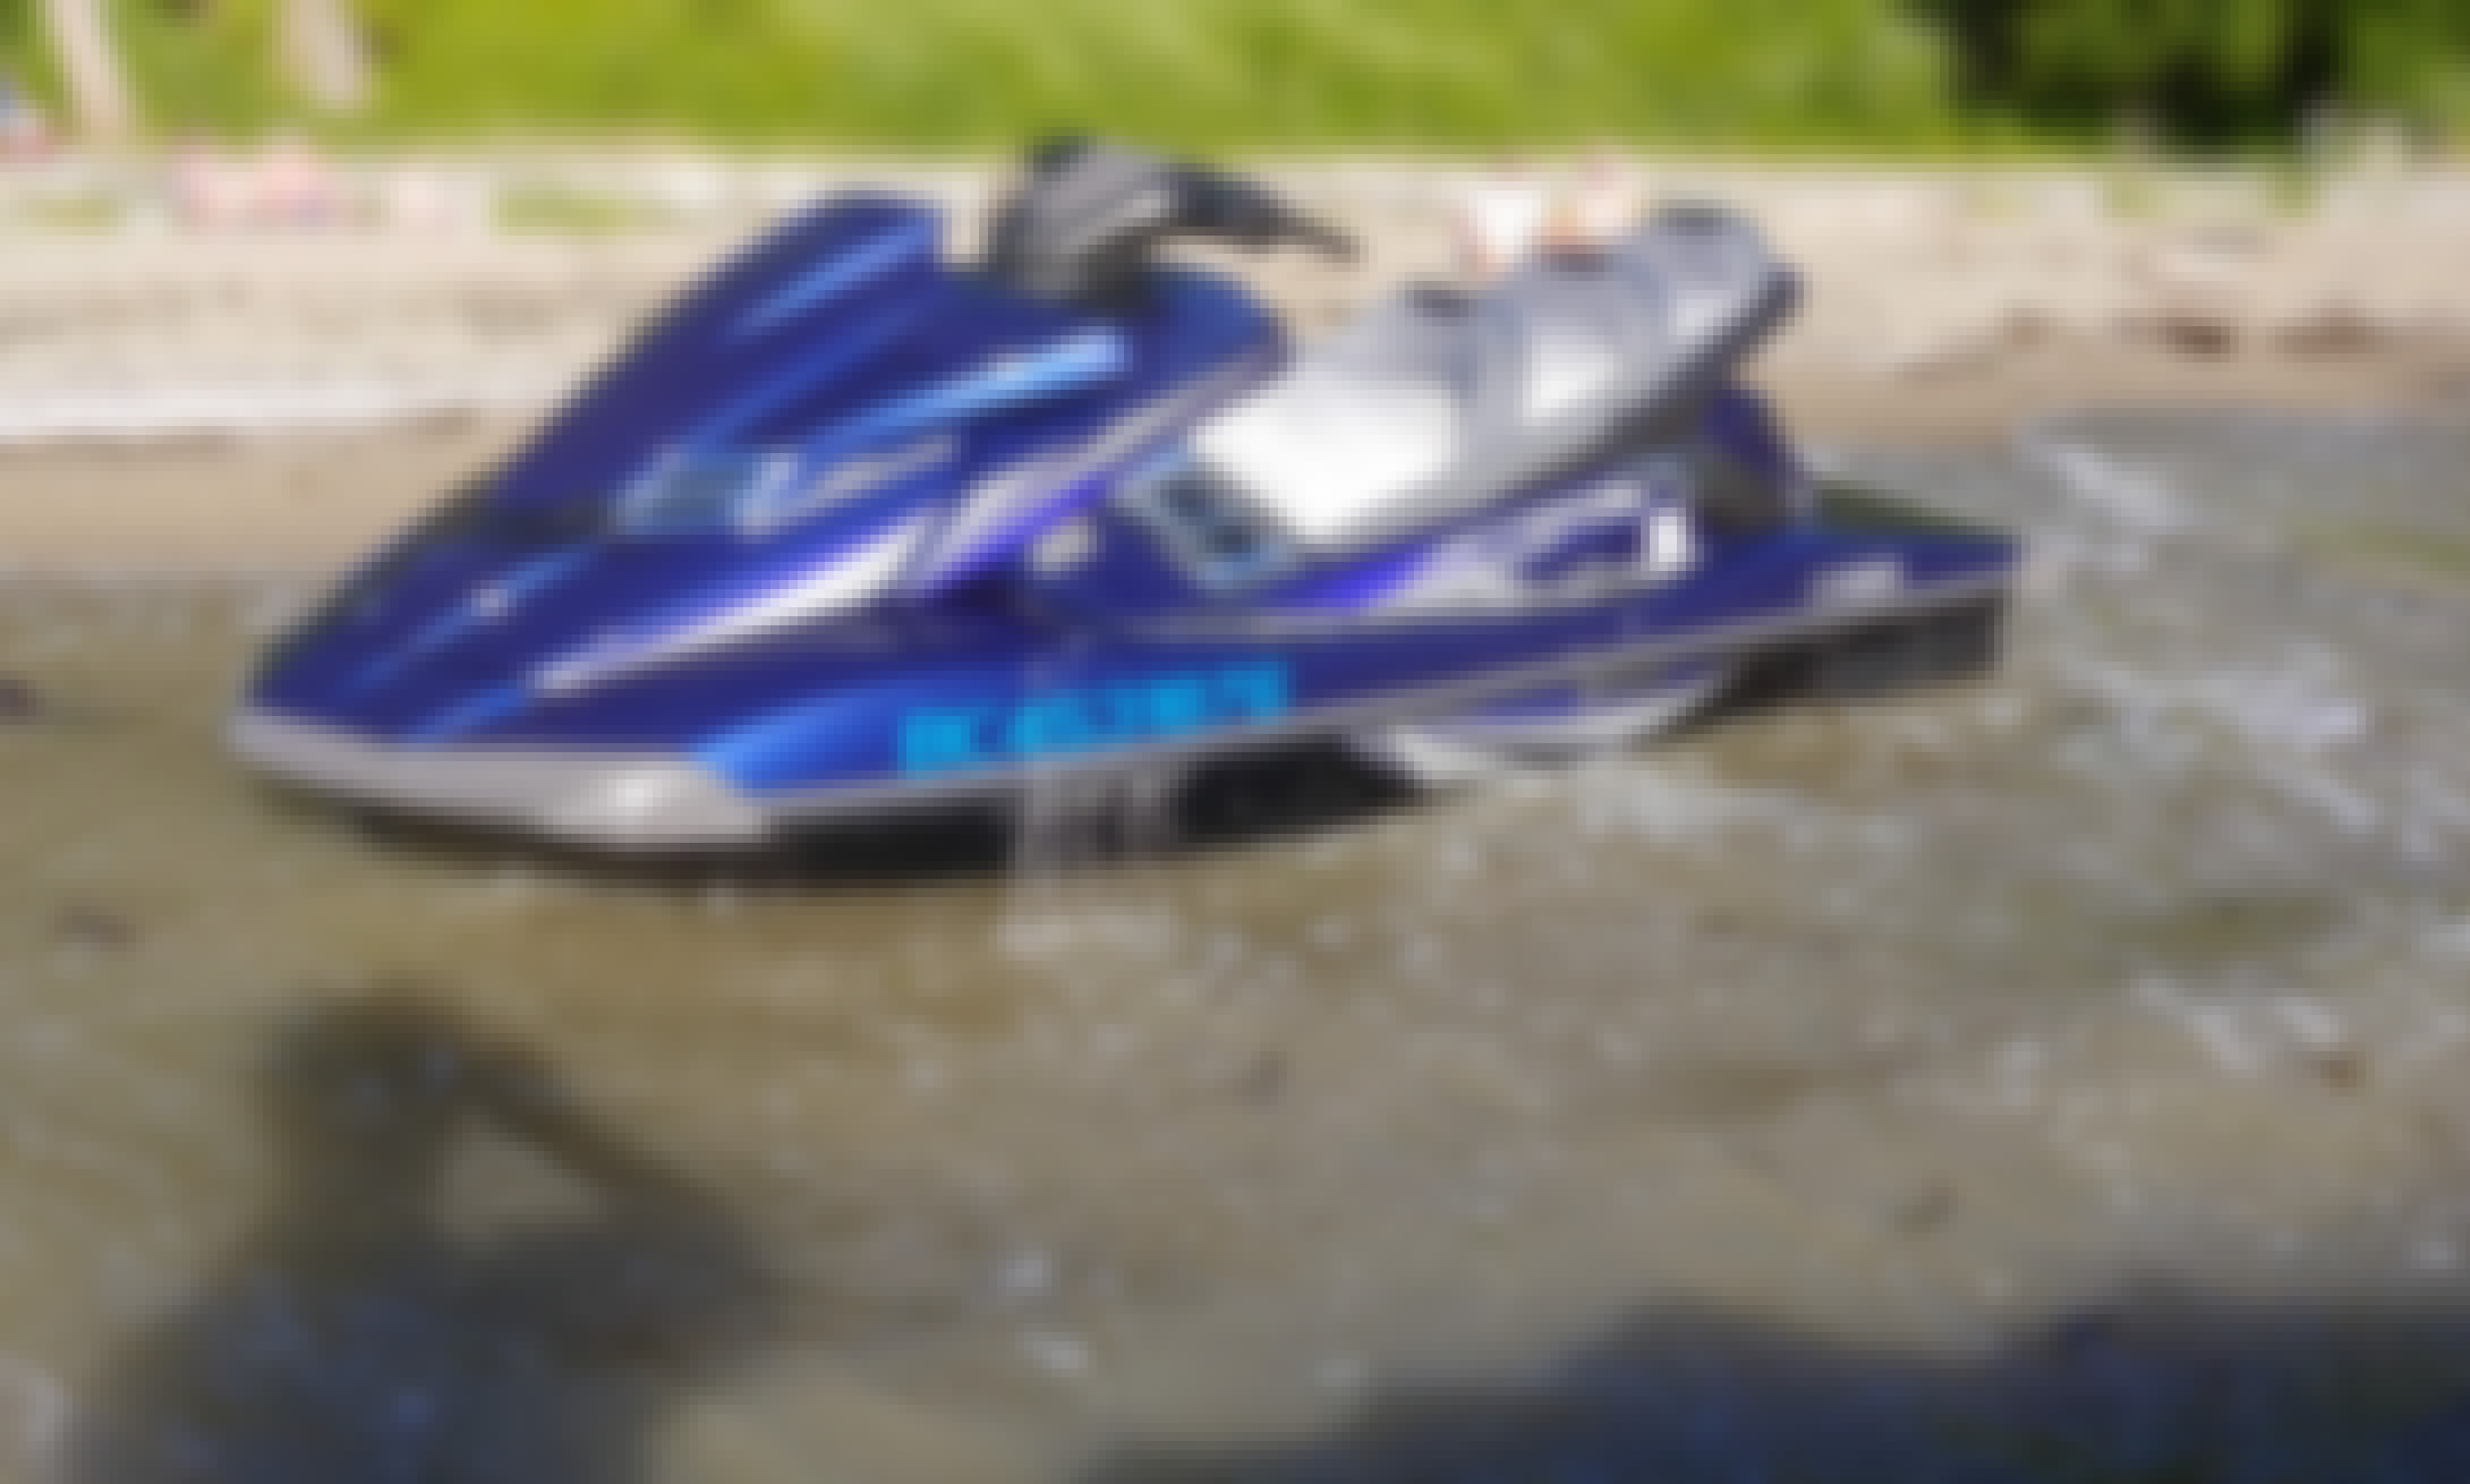 Yamaha Supercharged 3 Seater Jet Ski for Rent in Vancouver (With Captain Only)